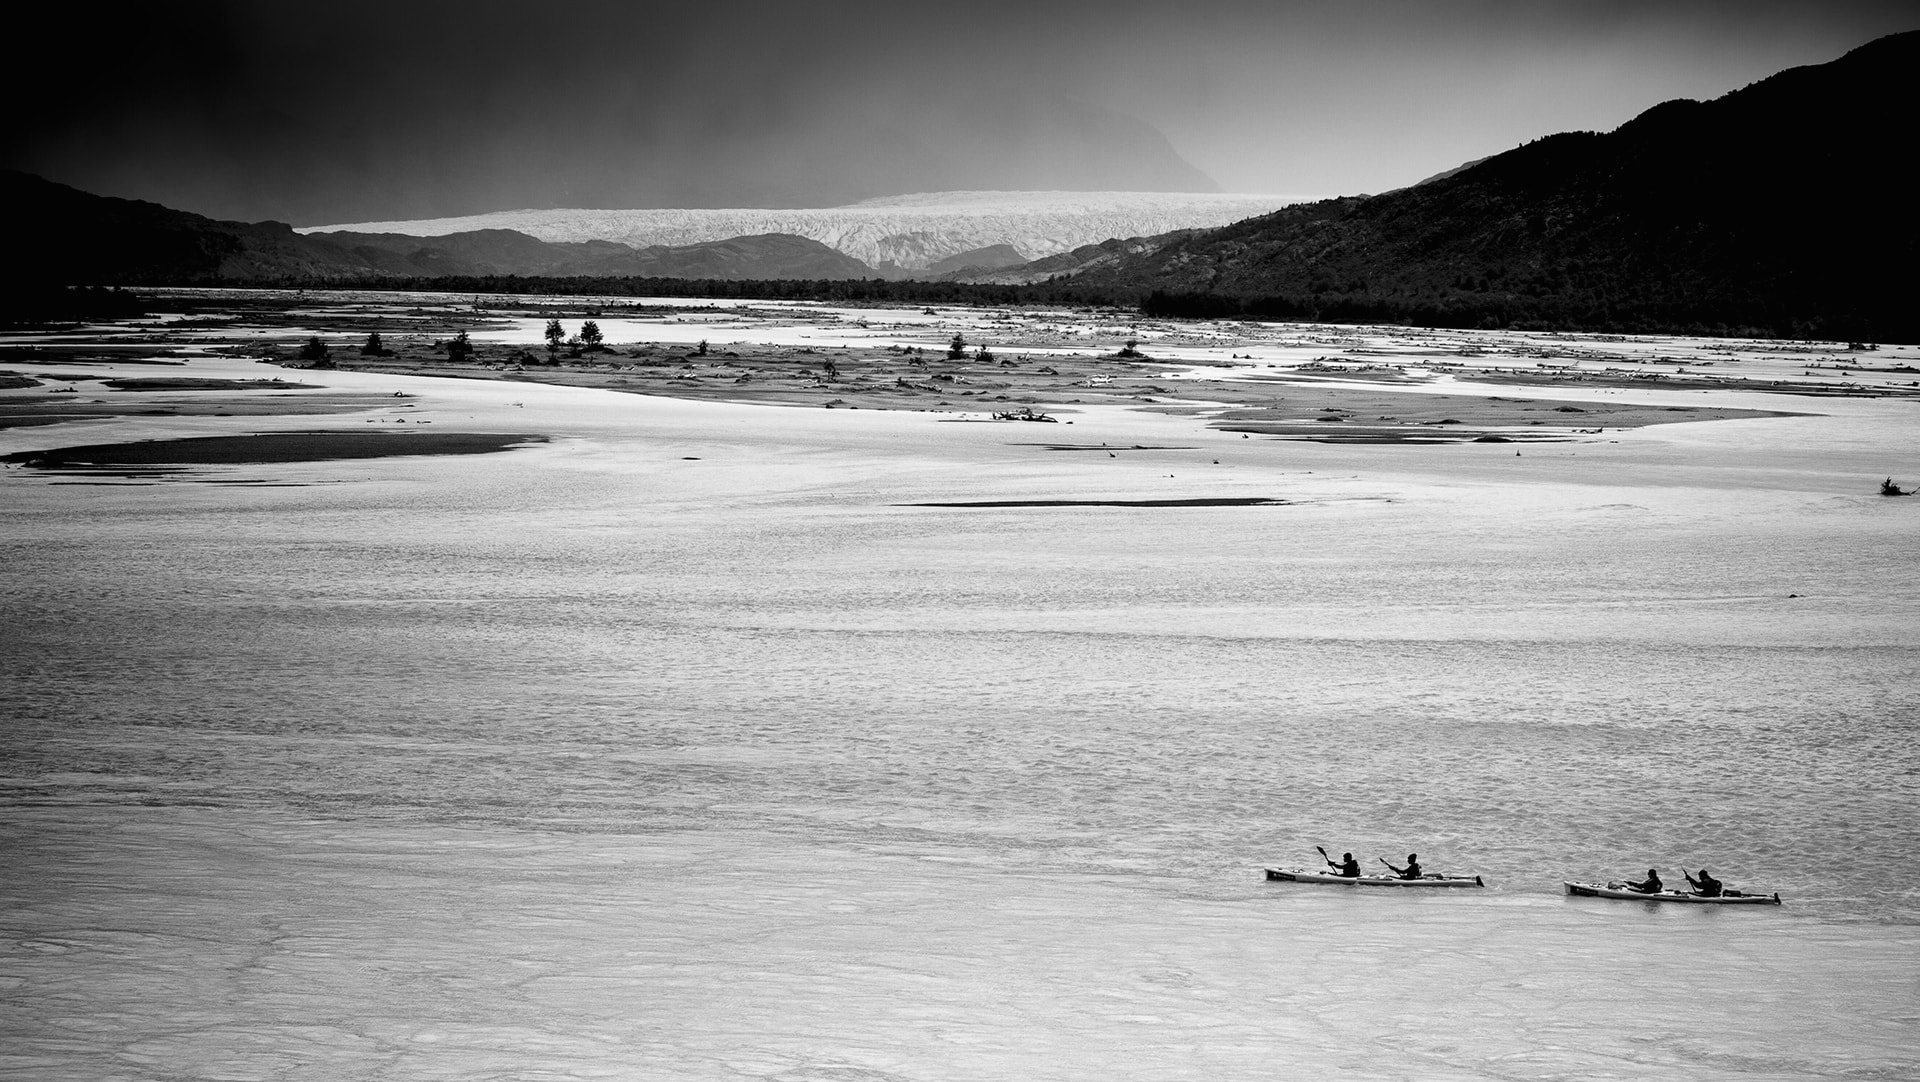 Patagonian Expedition Race, Patagonia, Chile Team Kayak Expedition Stage